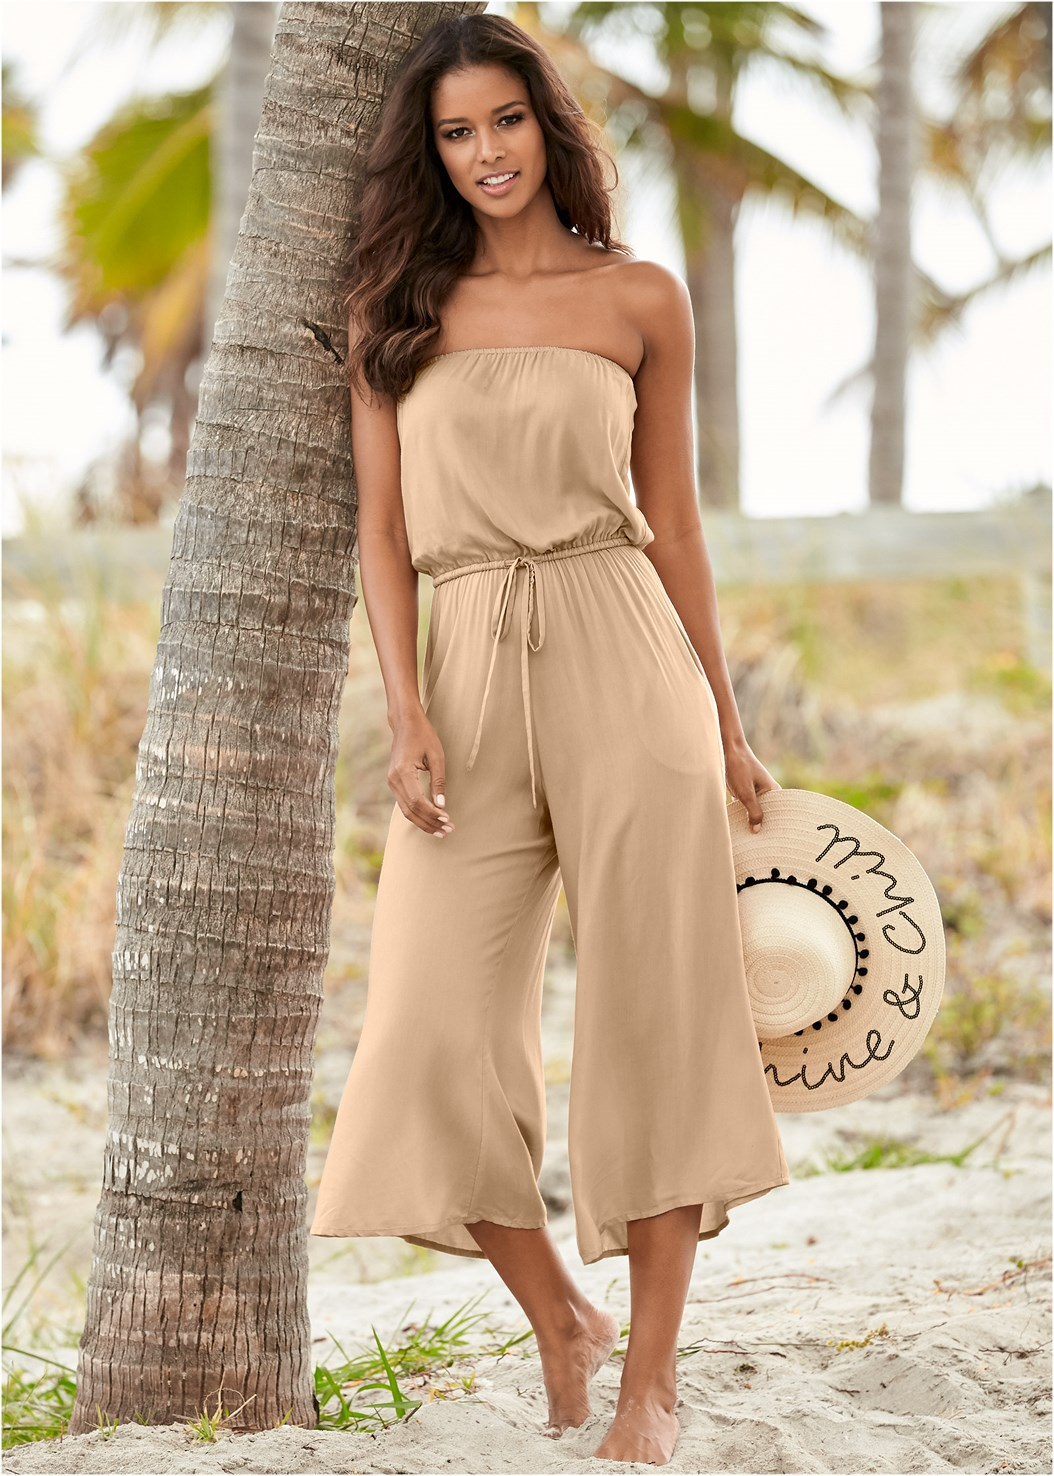 Strapless Jumpsuit,Lace Up Back Bandeau Top,Full Coverage Mid Rise Hipster Bikini Bottom,Slimming Draped One-Piece,Woven Handbag